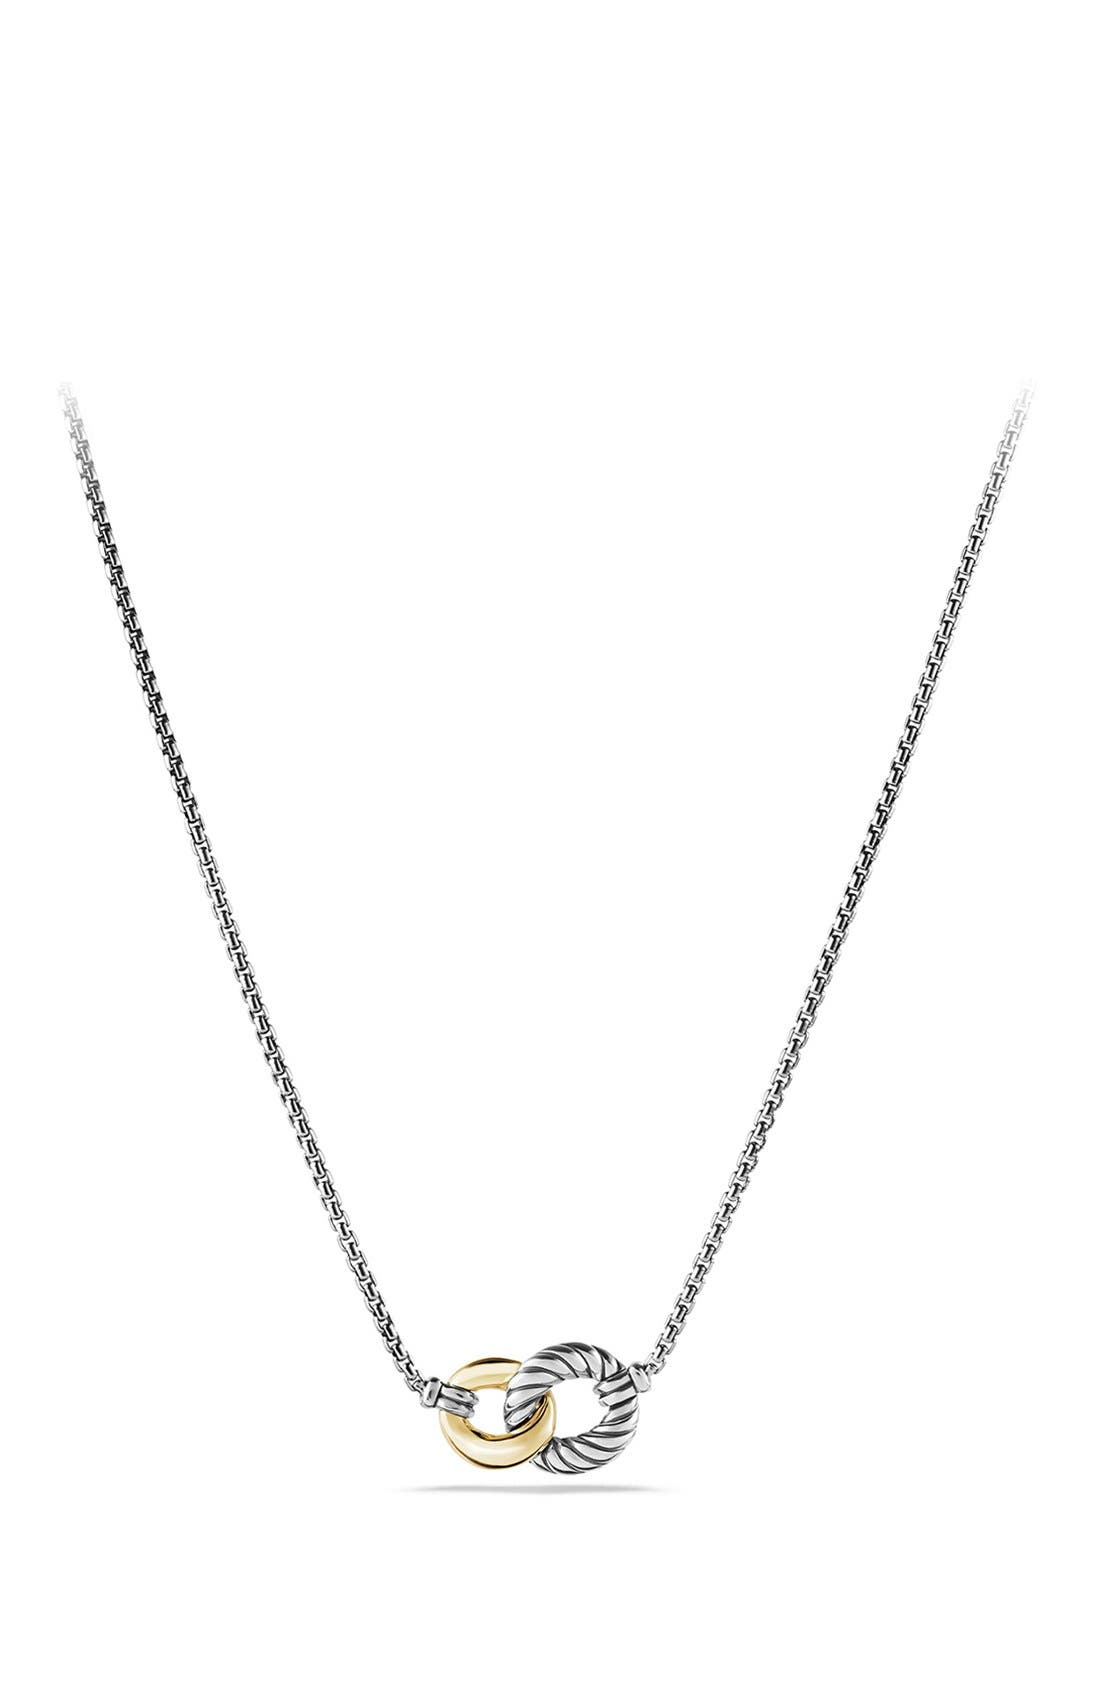 'Belmont' Curb Link Necklace with 18K Gold,                             Main thumbnail 1, color,                             TWO TONE